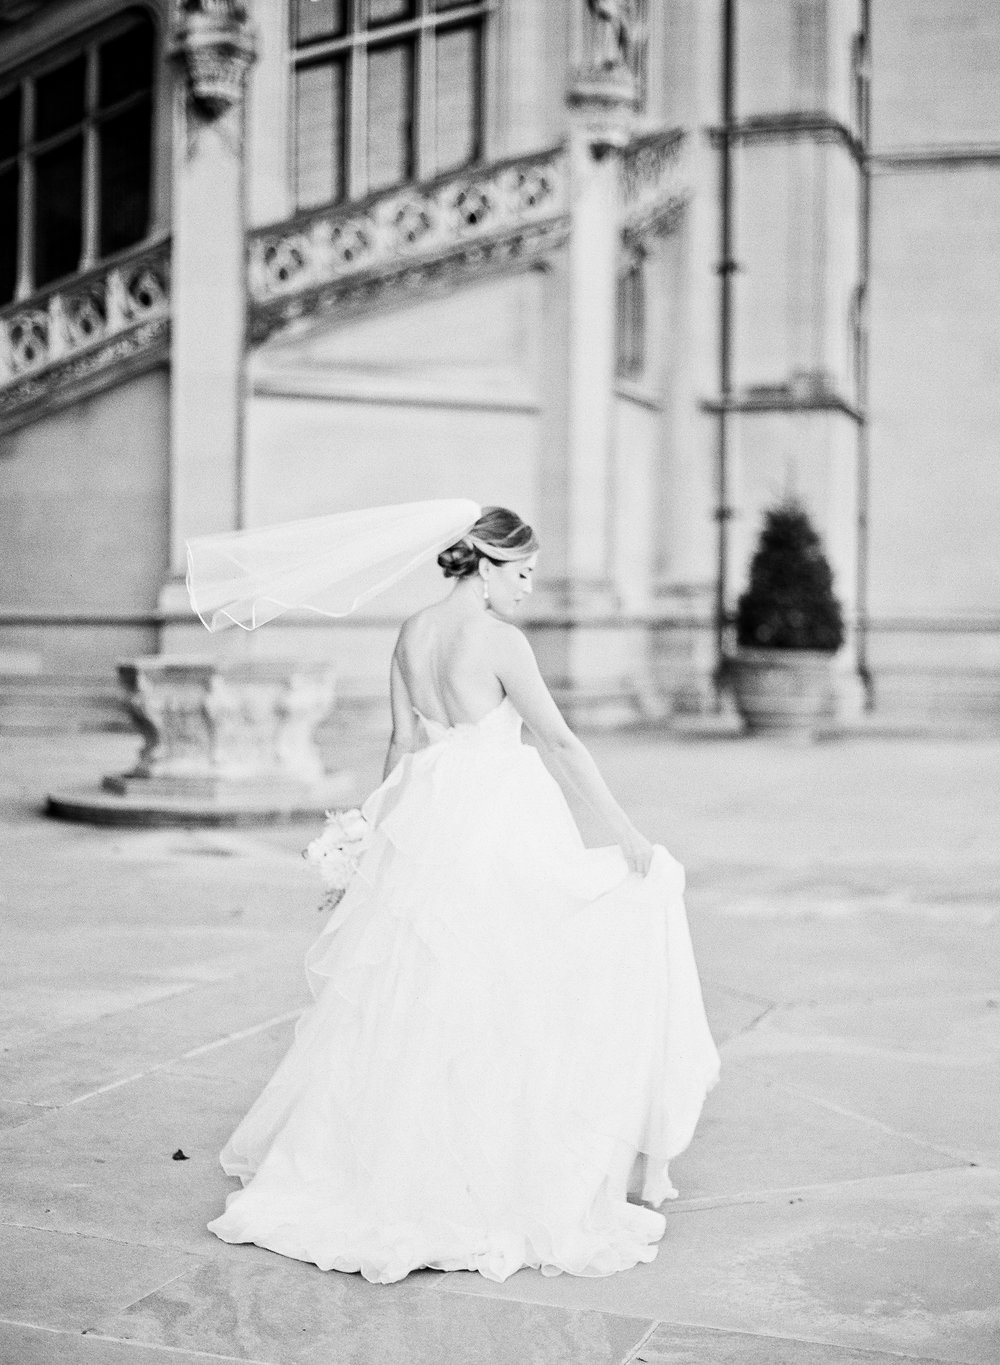 Michelle-March-Photography-Wedding-Photographer-Biltmore-Estate-Asheville-North-Carolina-Romantic-Film-Photo-Vintage-12